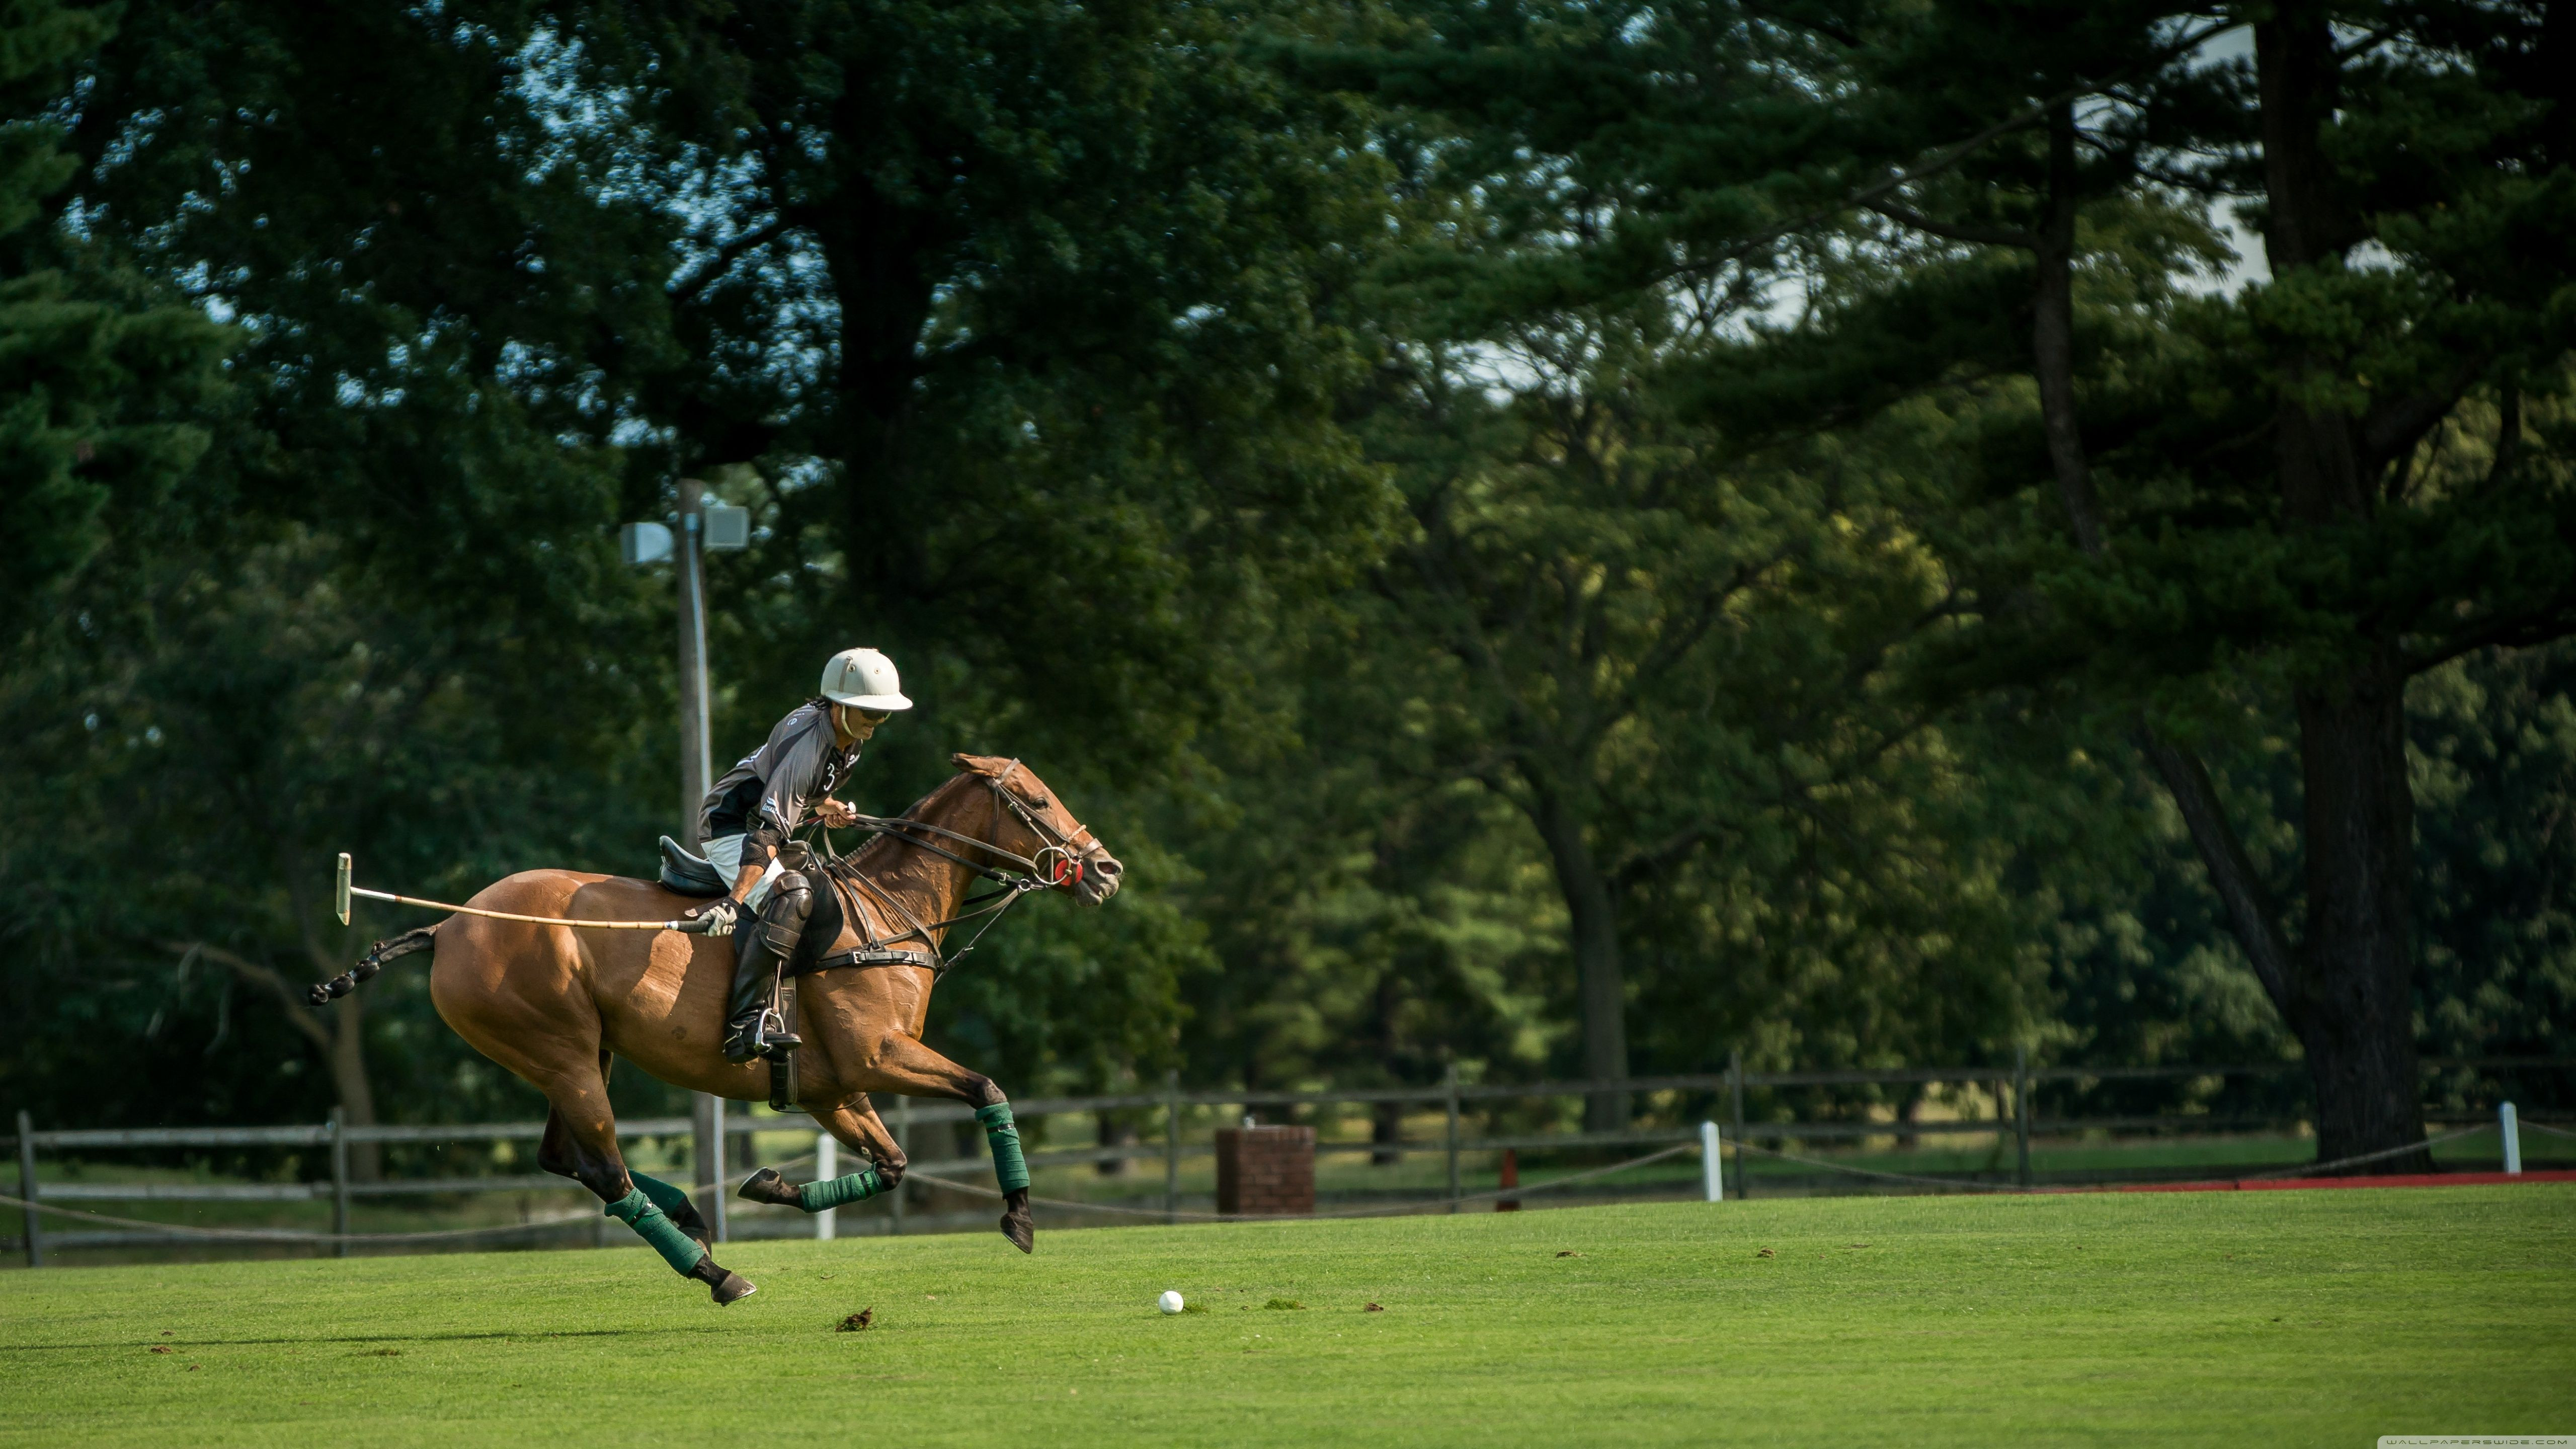 Polo at the Park ❤ 4K HD Desktop Wallpaper for • Wide & Ultra ...